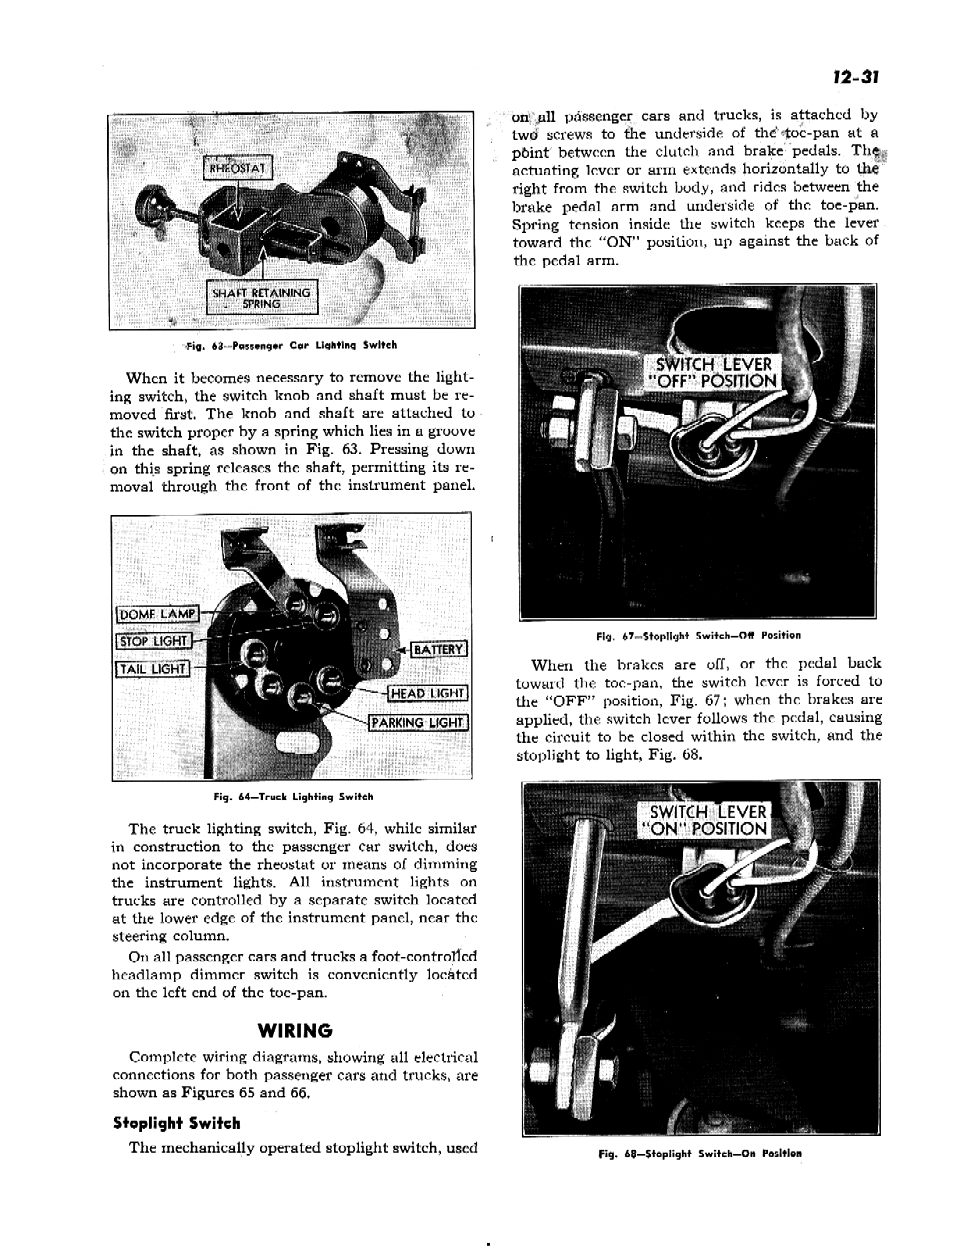 the link below is a 1953 chevrolet wiring diagram  it may help you to see  how the switch would be wired